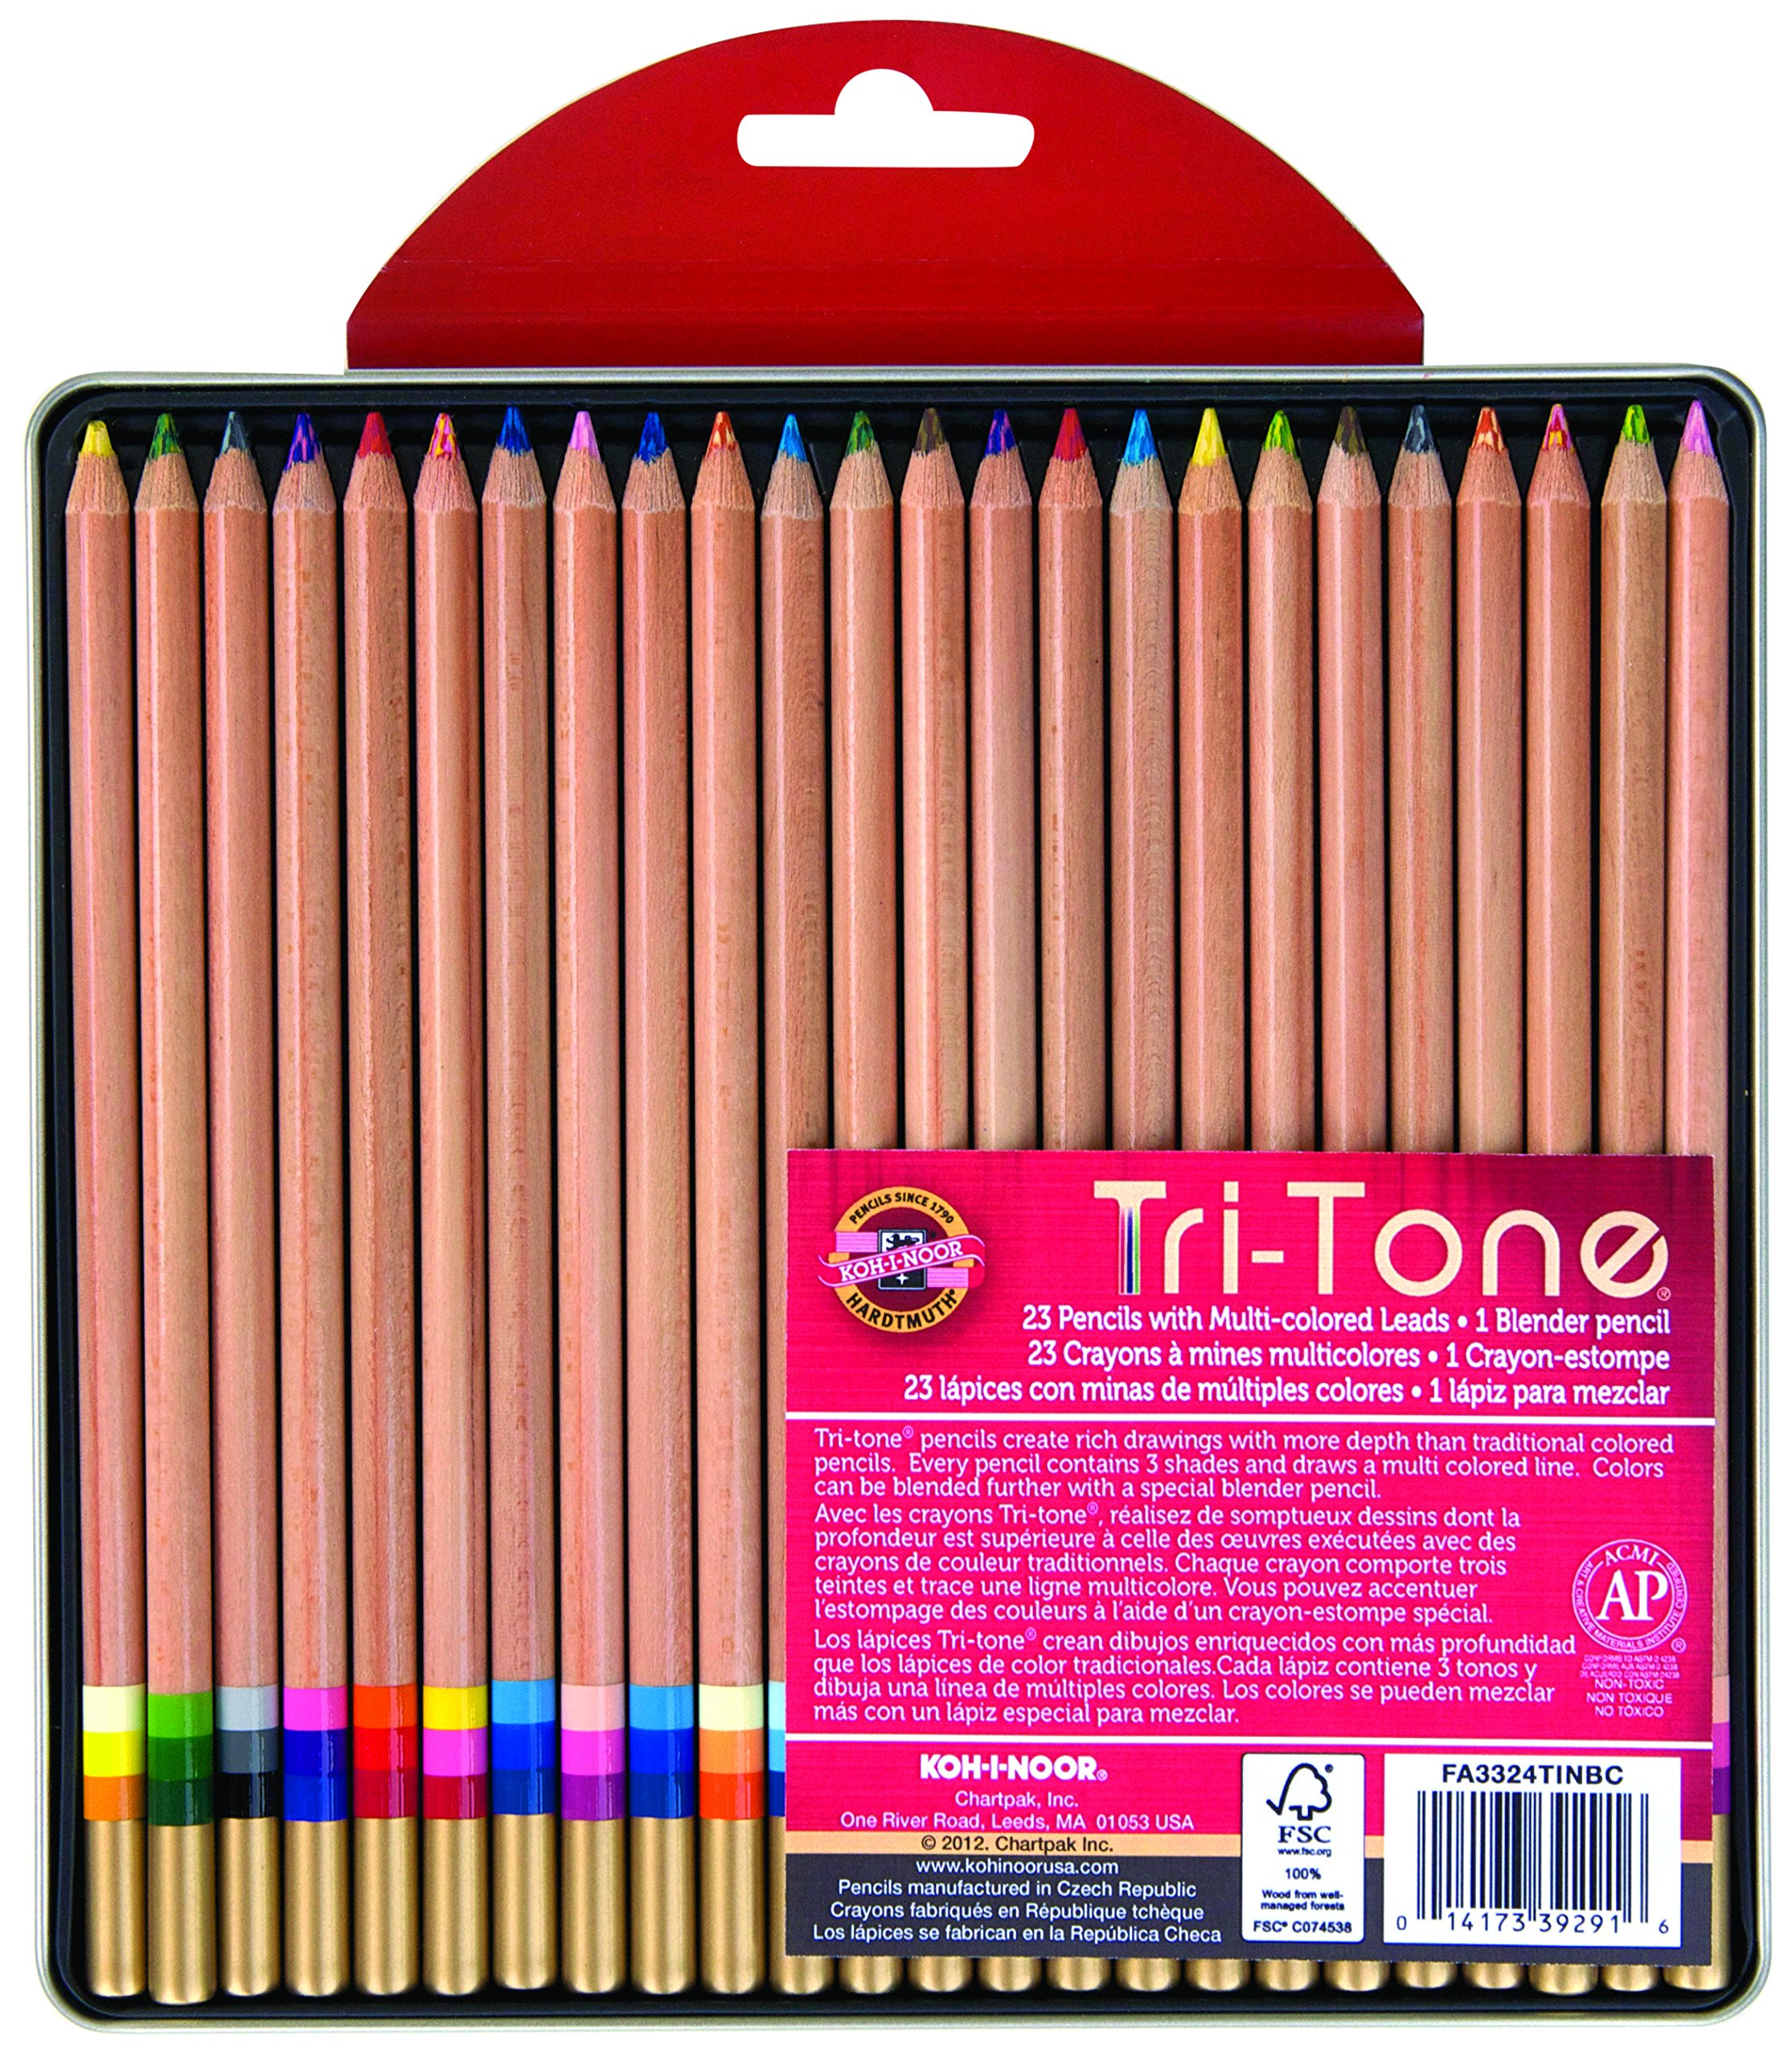 Koh-I-Noor Tri-Tone Multi-Colored Pencil Set, 24 Assorted Colors in Tin and Blister-Carded (FA33TIN24BC) by Koh-I-Noor